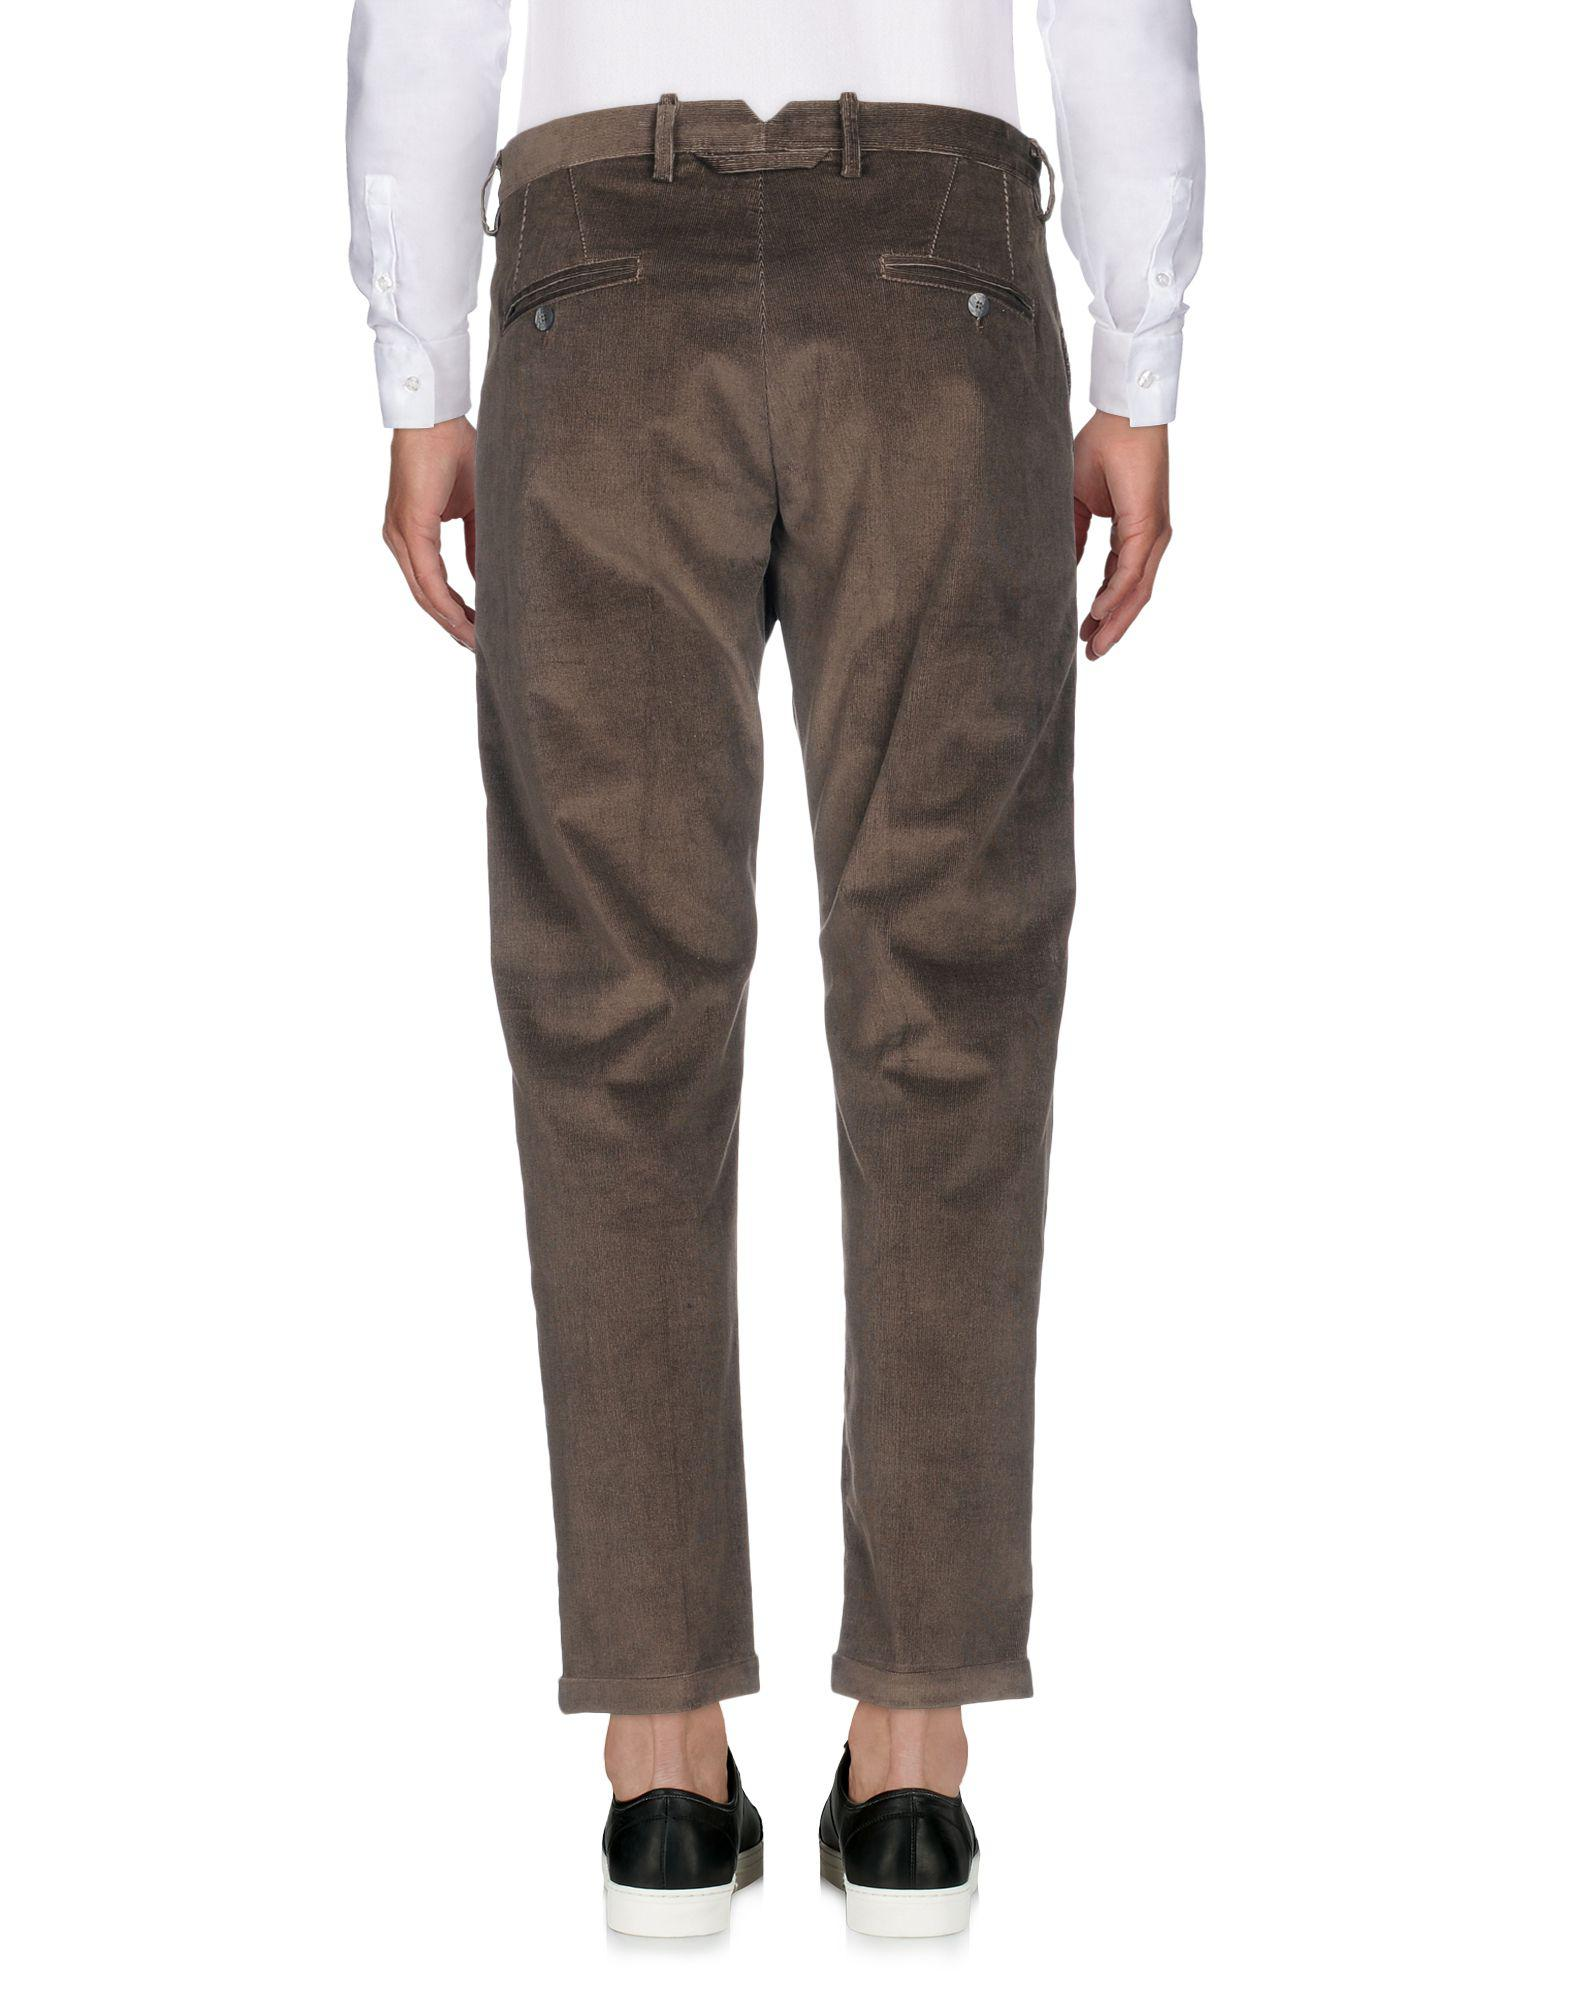 Officina 36 Velvet Casual Trouser in Lead (Grey) for Men